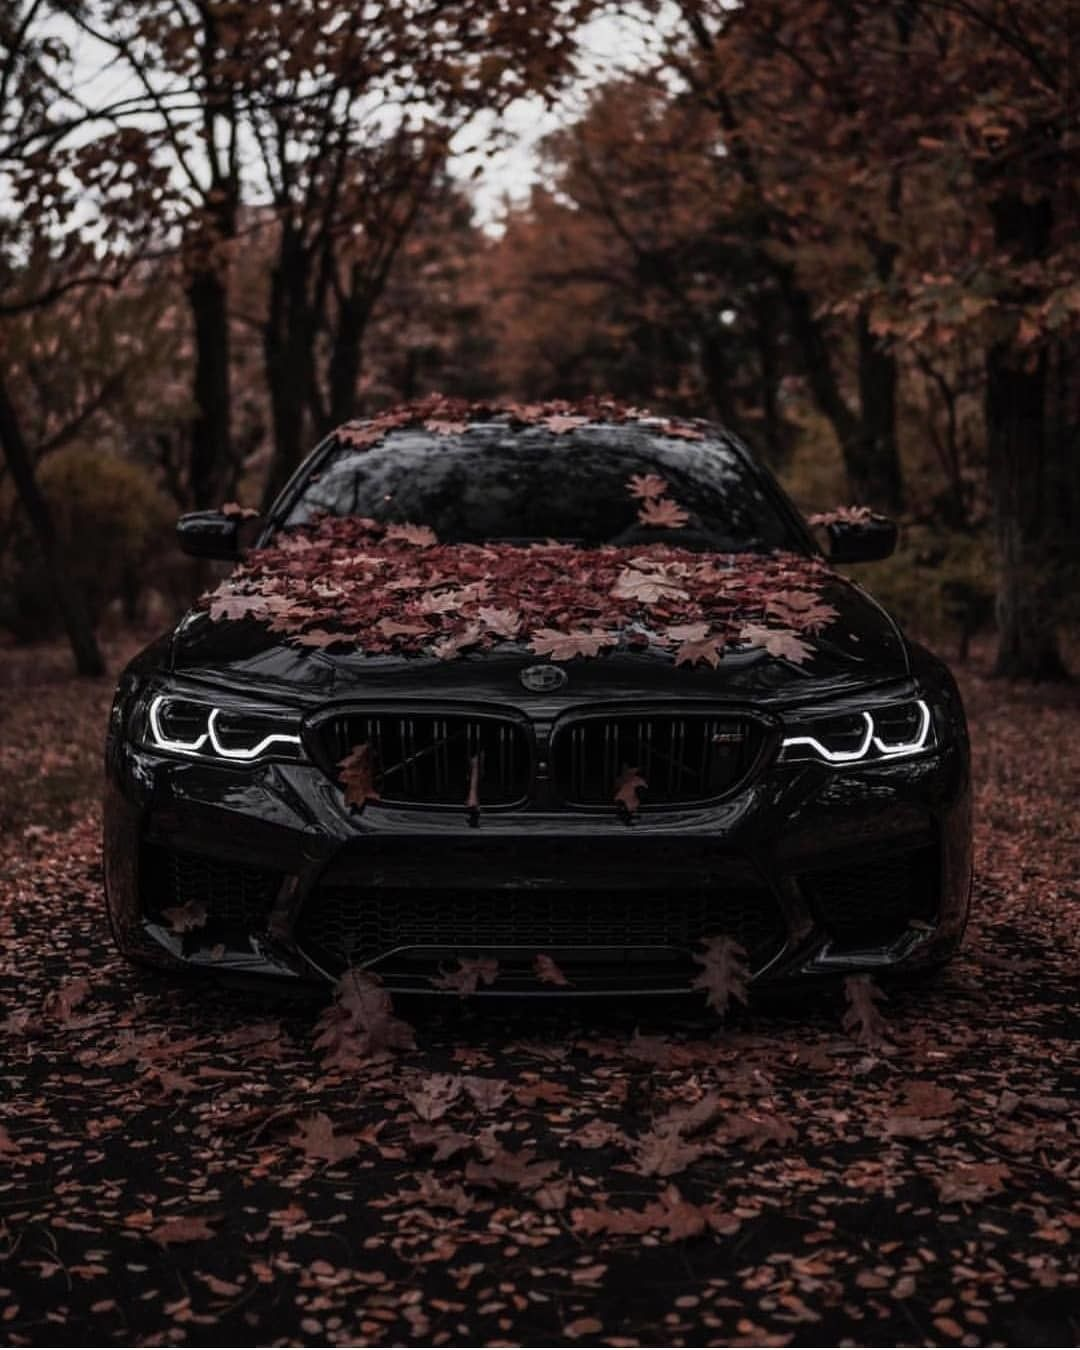 Tag For M5 Bmw M5 E60 Iphone Wallpapers Wallpaperboat